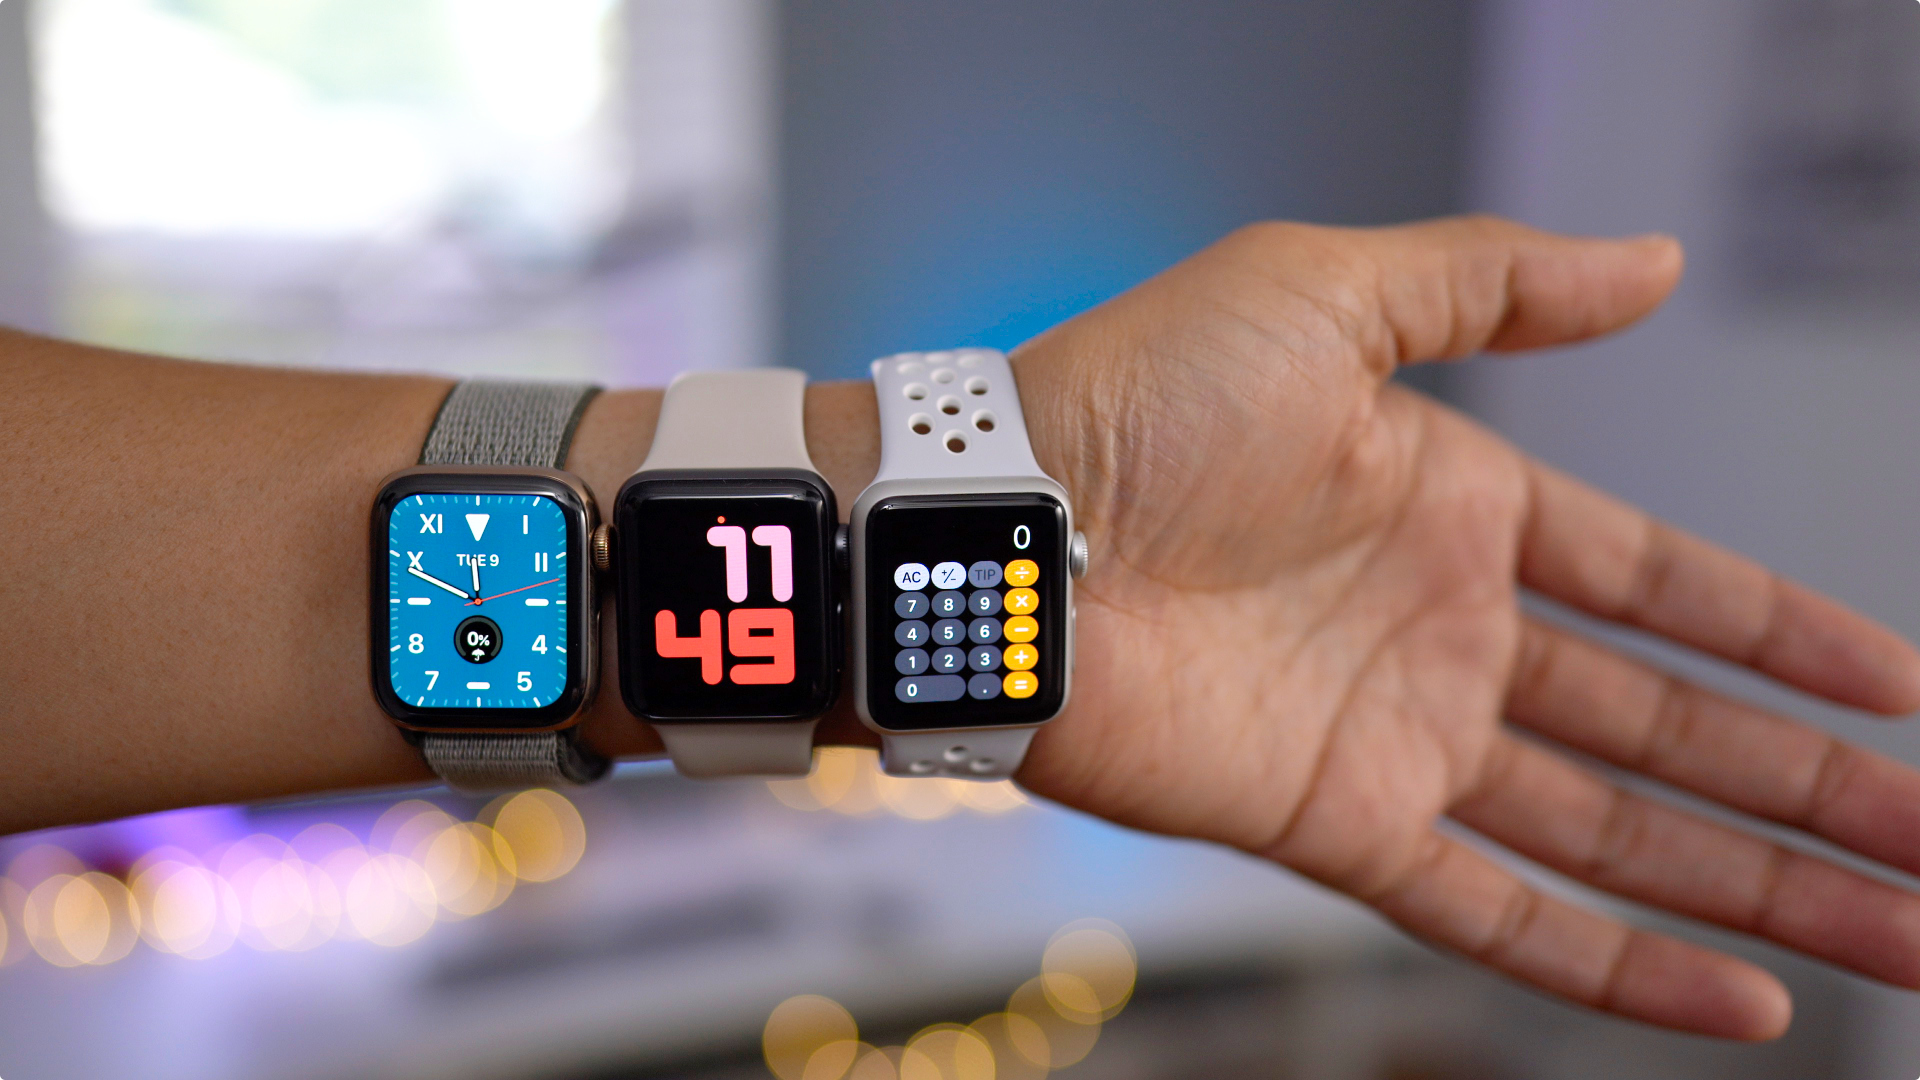 Apple Pay, Apple Watch, and that infamous U2 debacle turn 5